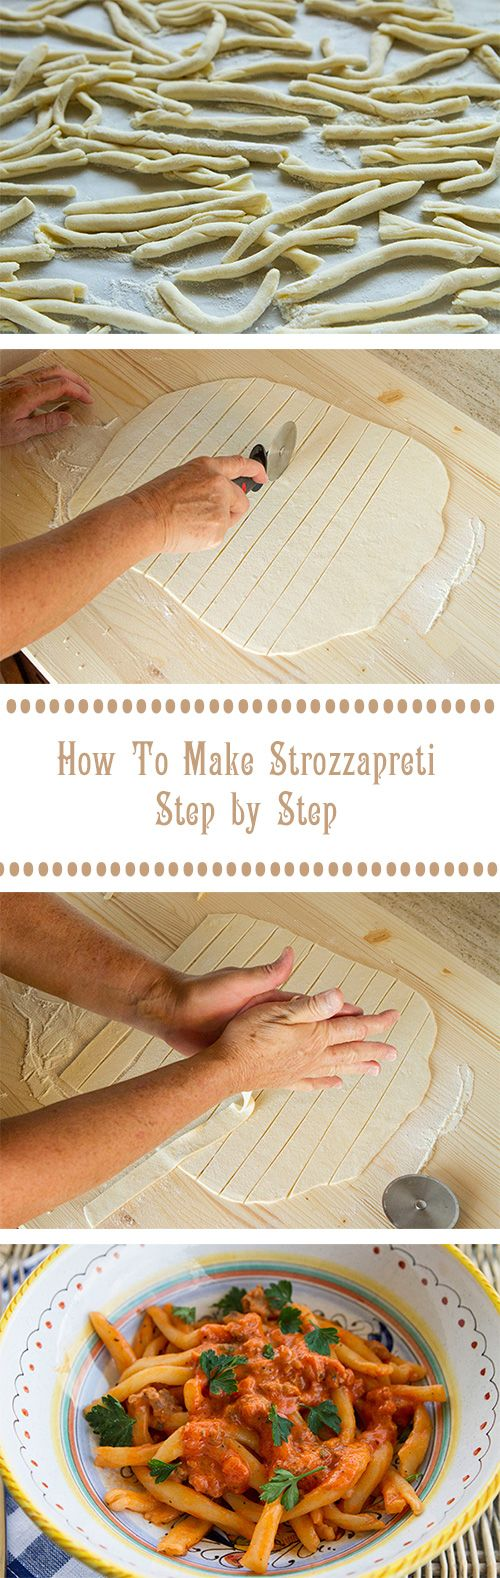 How To Make Strozzapreti Step by Step - A complete tutorial for making handmade strozzapreti (priest stranglers) with photos.